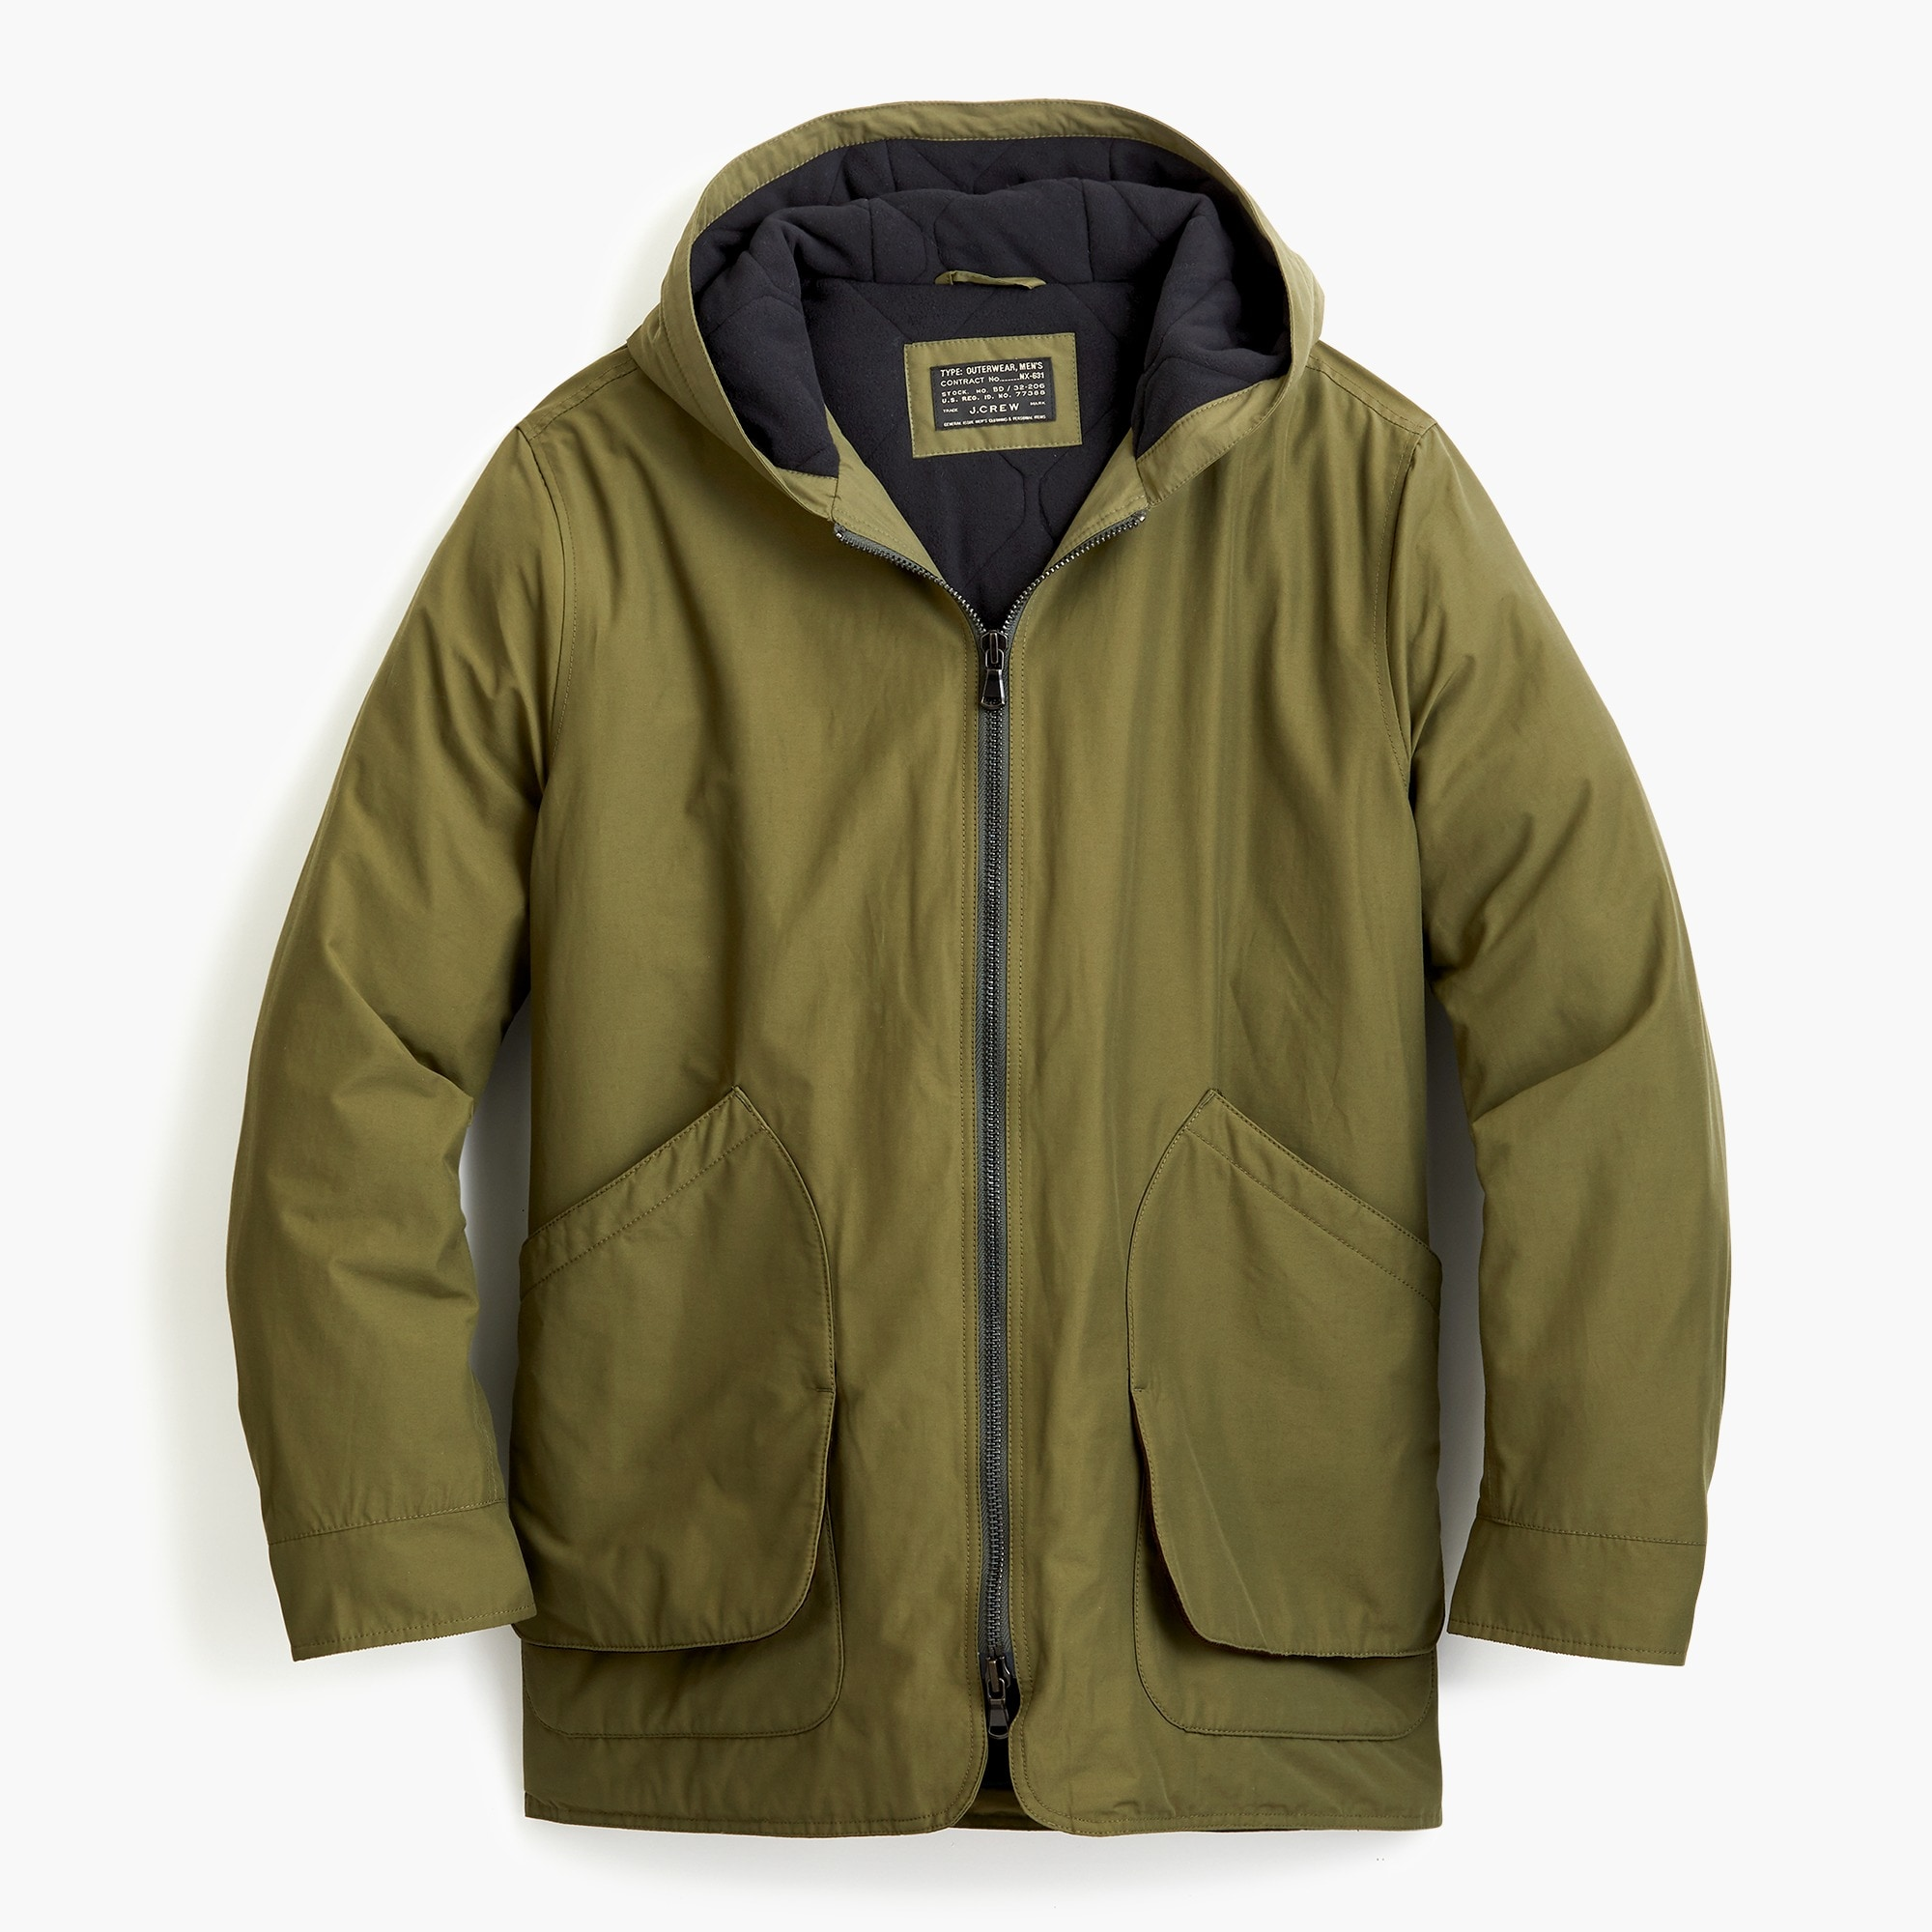 mens Fleece-lined hooded jacket